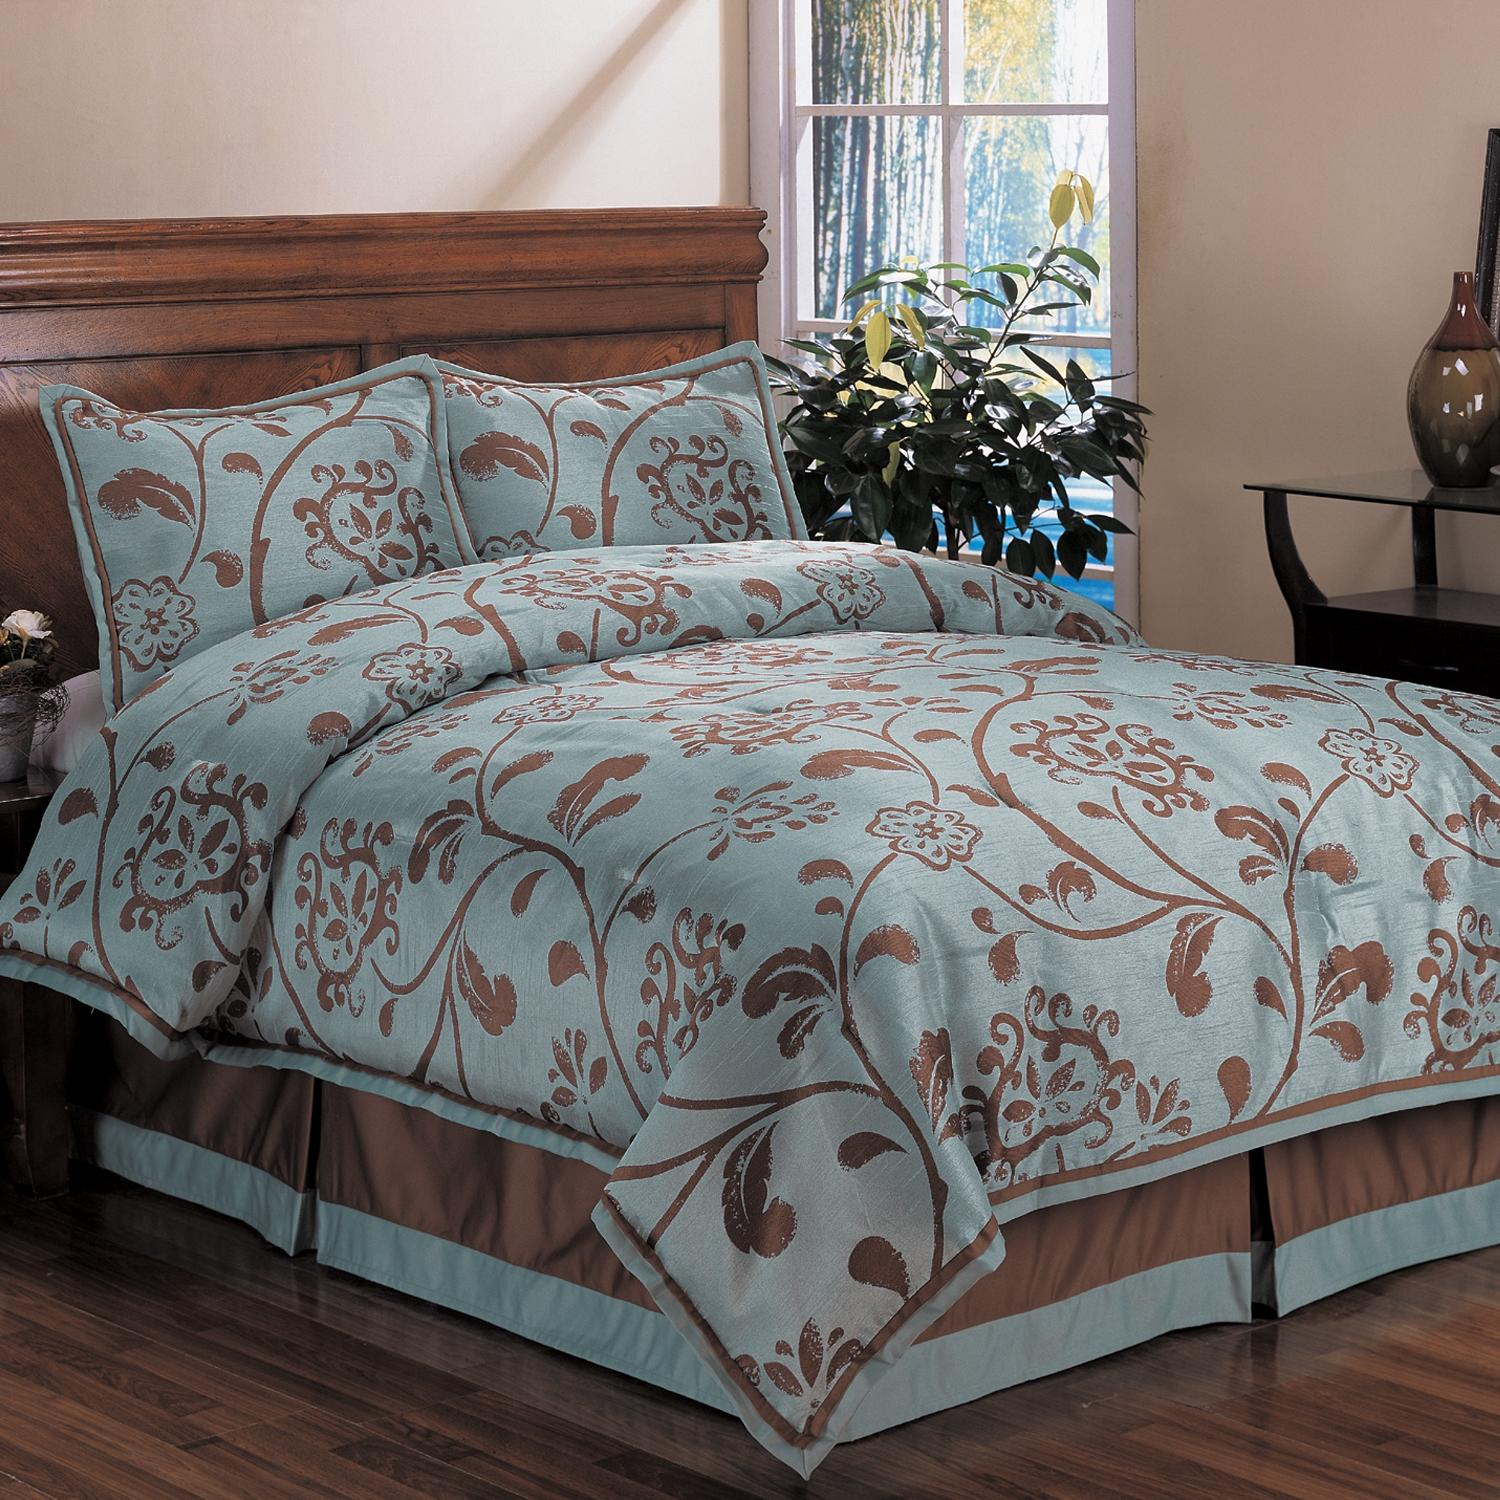 shop bella floral queen size 4 piece comforter set free shipping today overstock 5393979. Black Bedroom Furniture Sets. Home Design Ideas